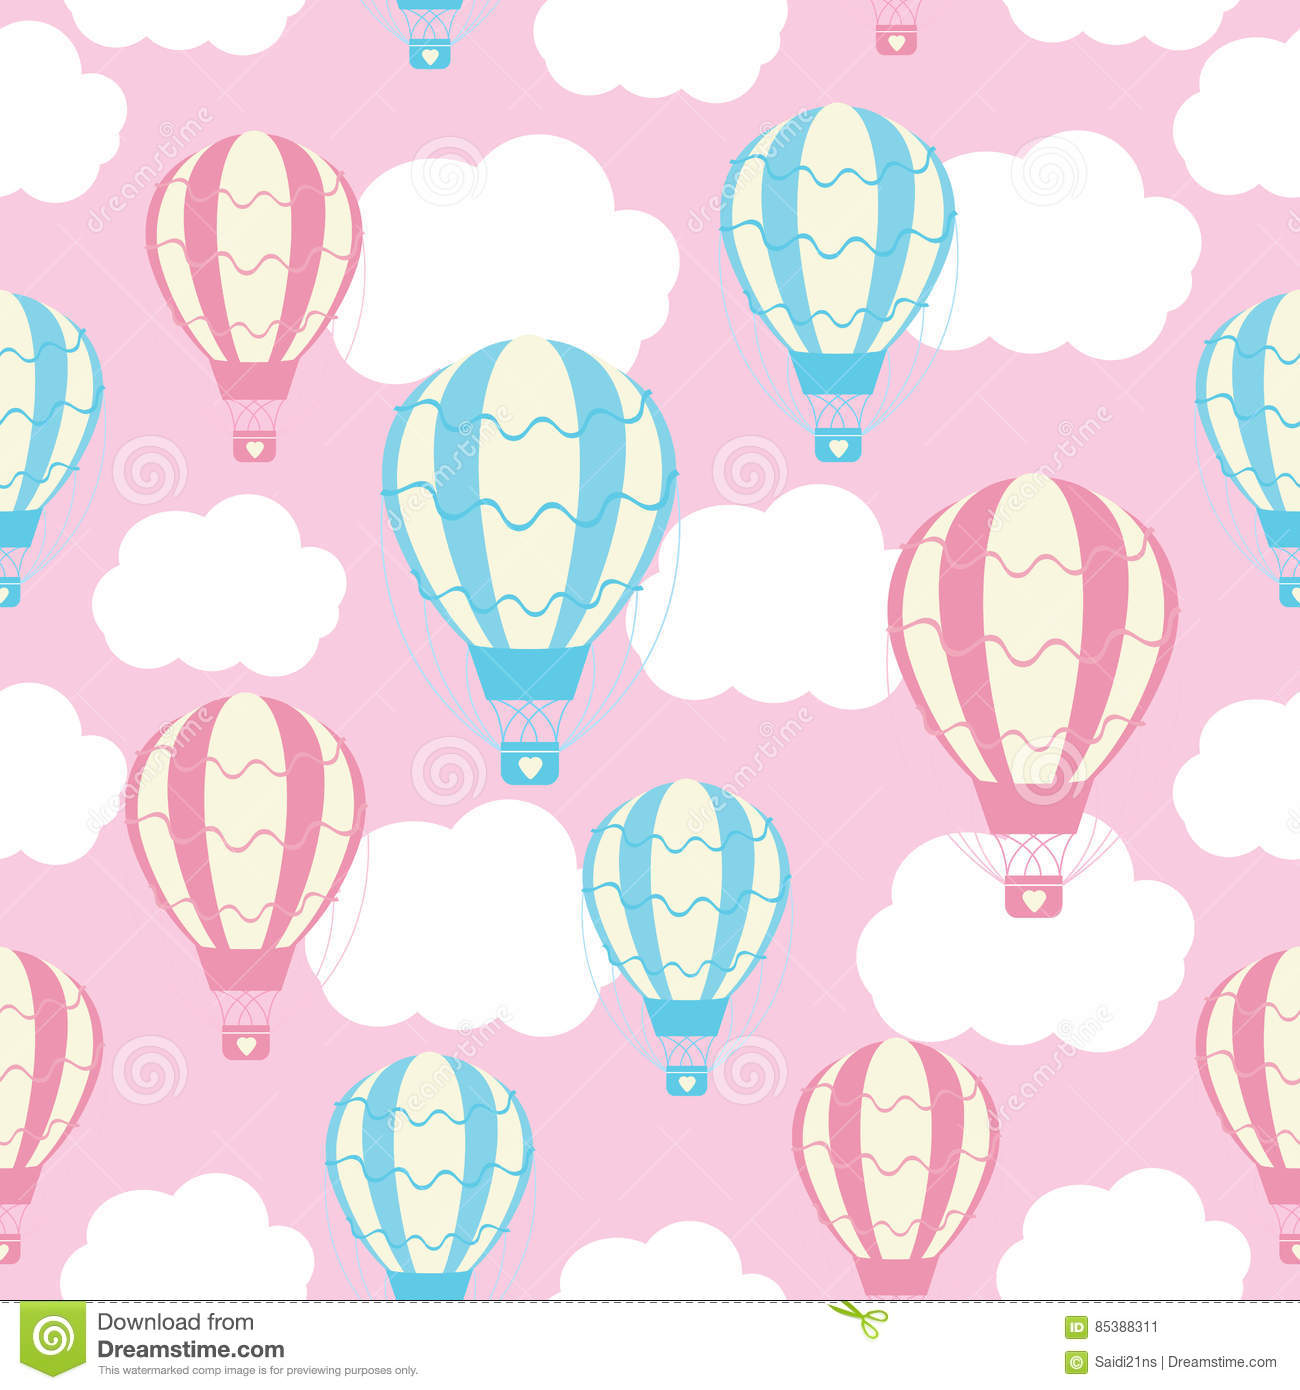 picture about Hot Air Balloon Pattern Printable titled Kid Shower Seamless Routine With Lovable Warm Air Balloons Upon